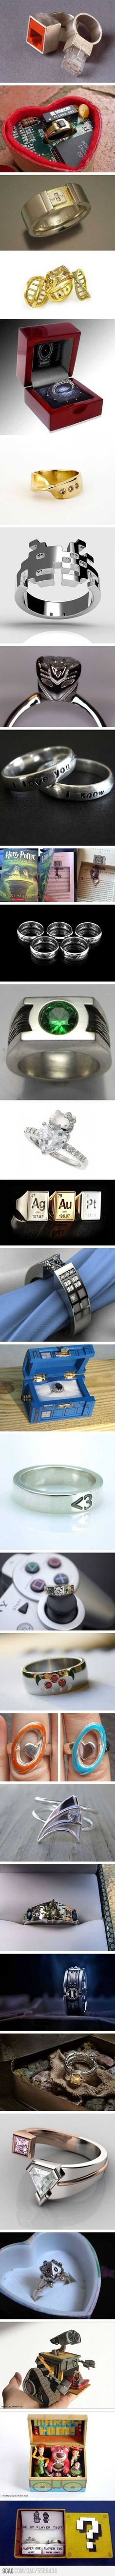 When two geeks fall in love... So, who wants to get me the Playstation ring? I will say yes.